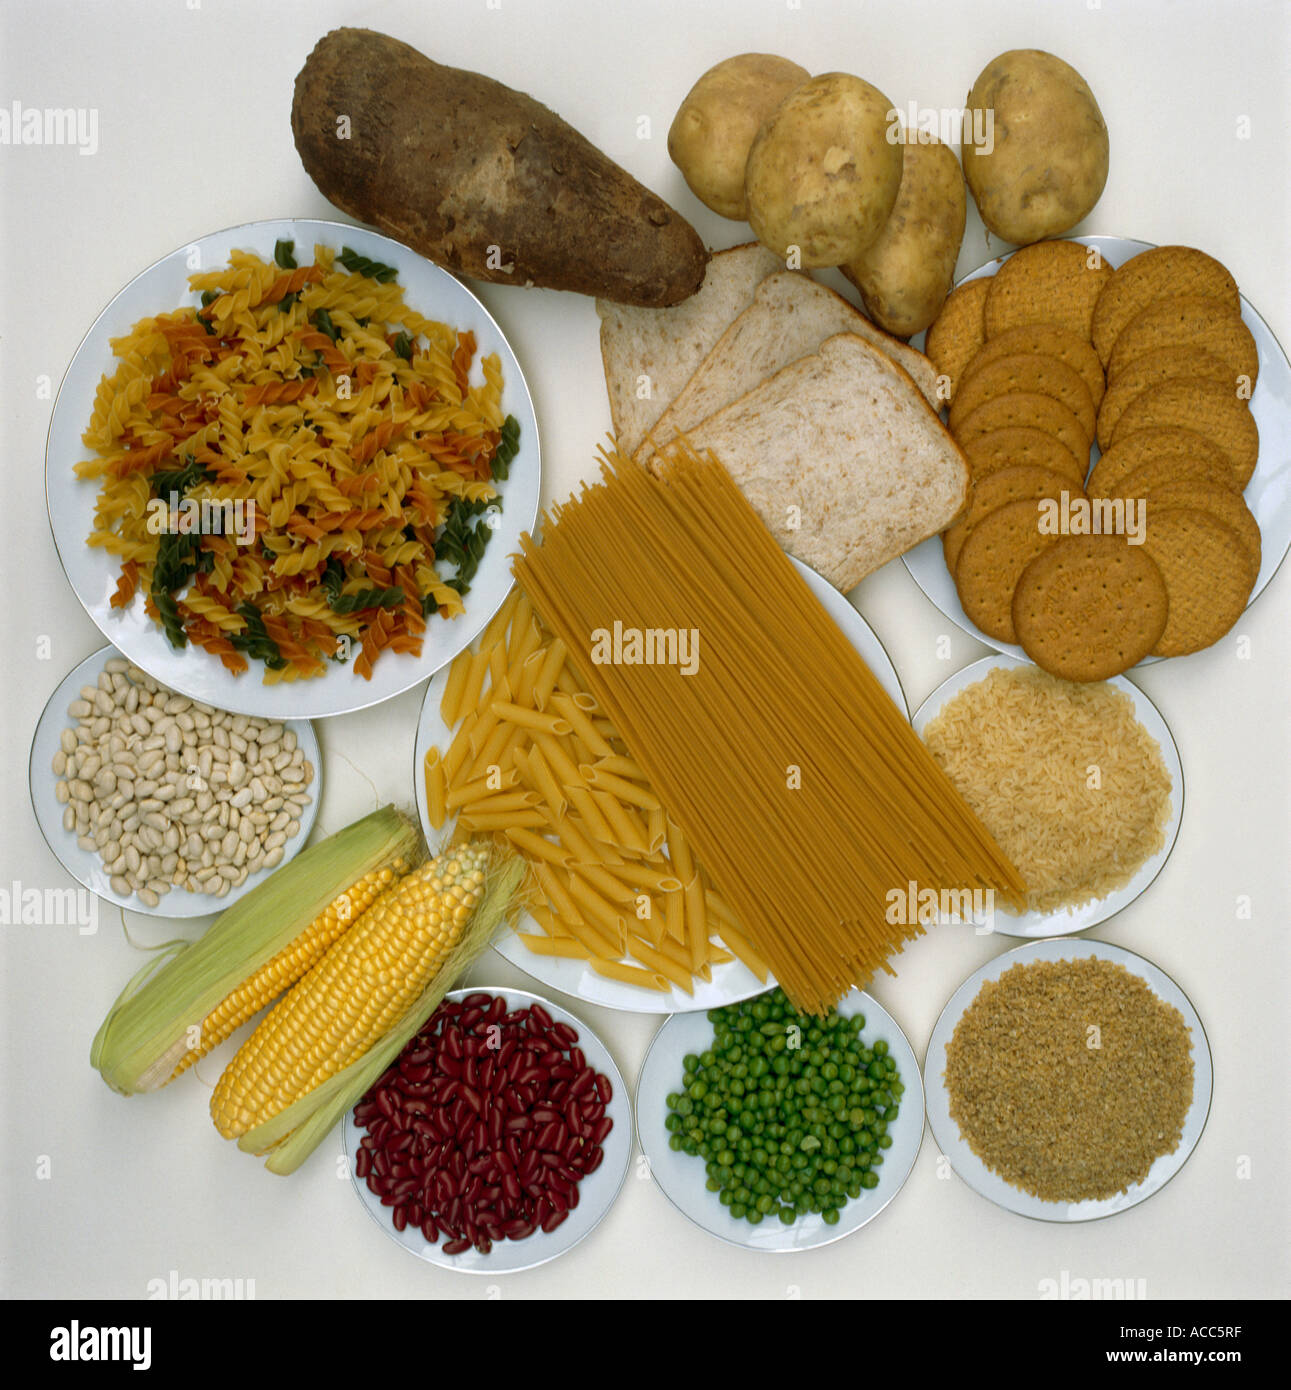 Carbohydrates Wheat Cracked Maize Rice Potatoes Yam Peas Bread Pasta Digestive Biscuits - Stock Image